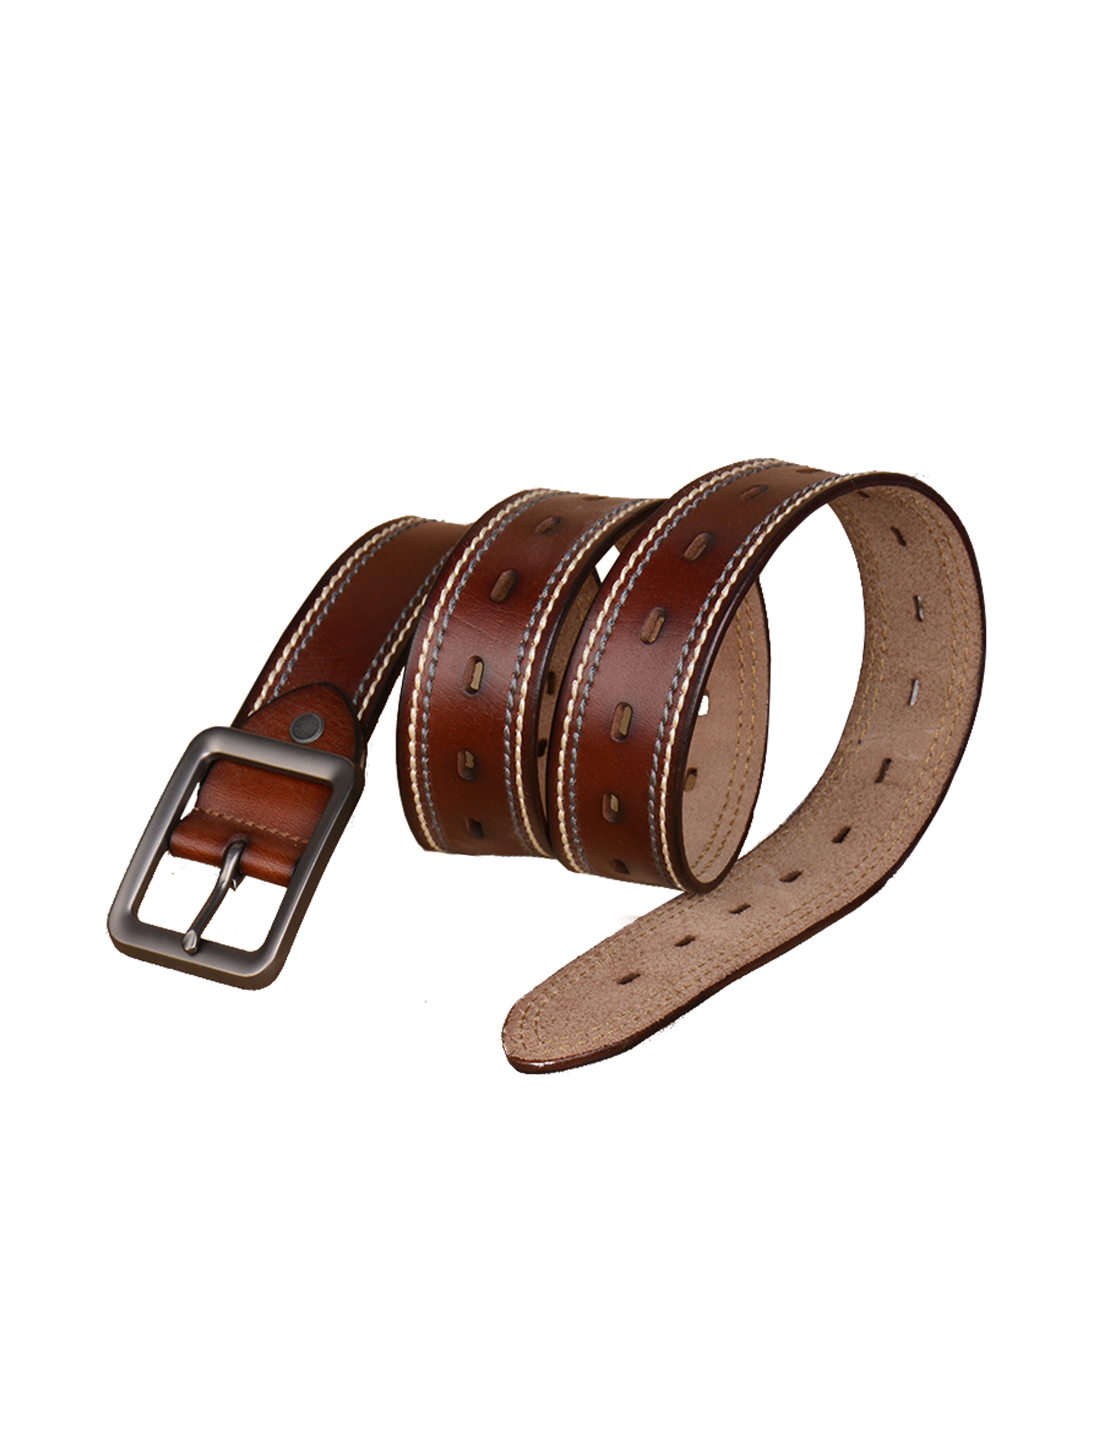 Men Fashion Stitching Single Pin Buckle Leather Belt 39mm Width 1 1/2 Brown 115cm